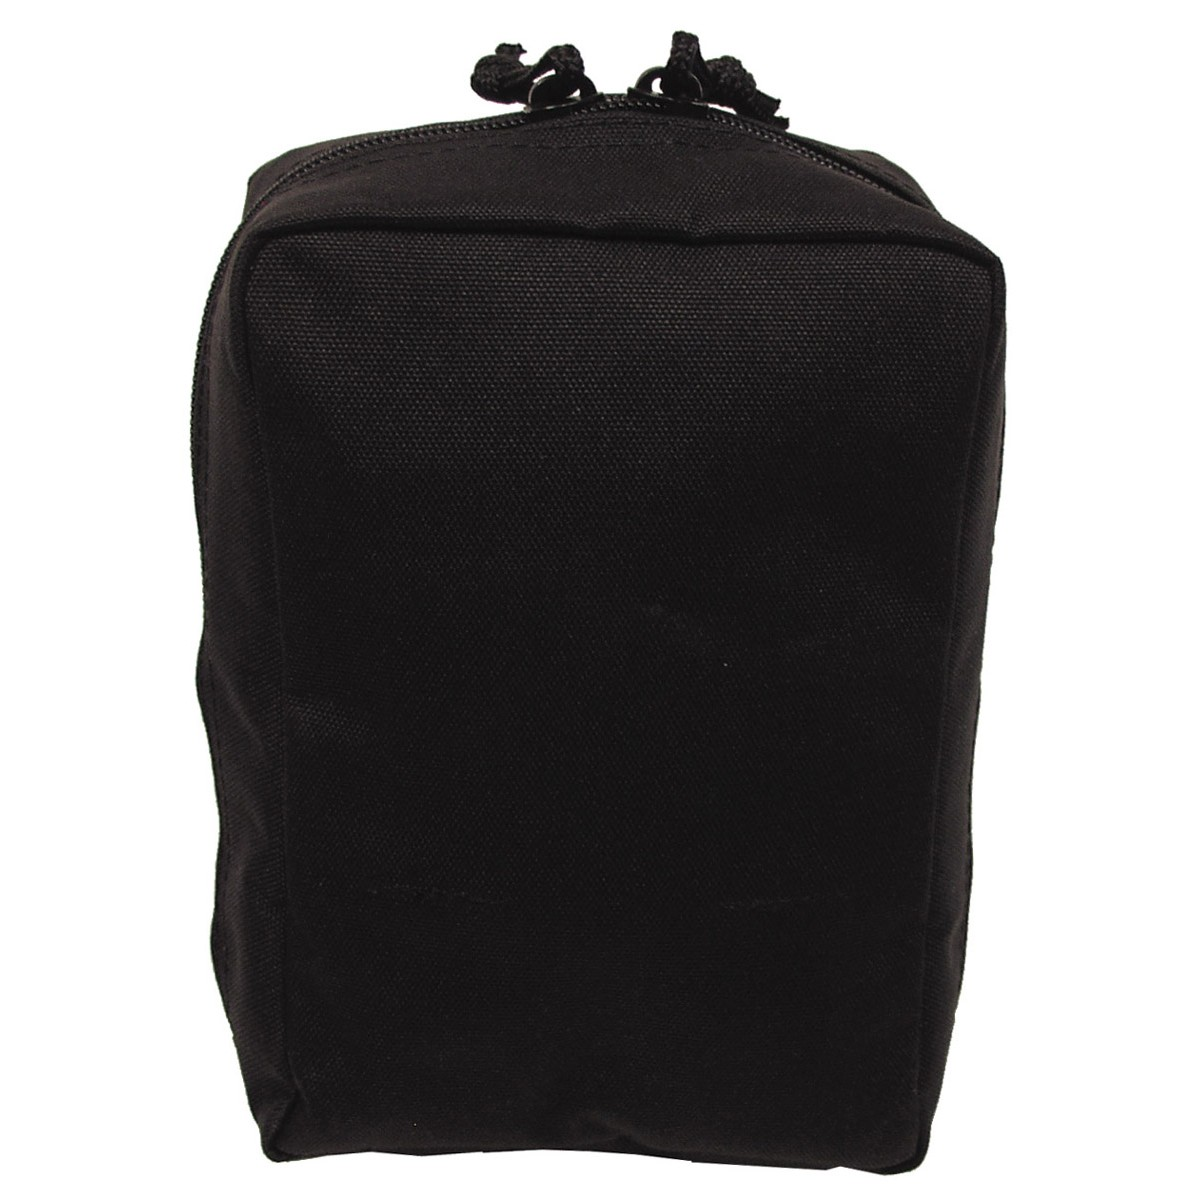 Tactical Utility Mollle Small Pouch - Black